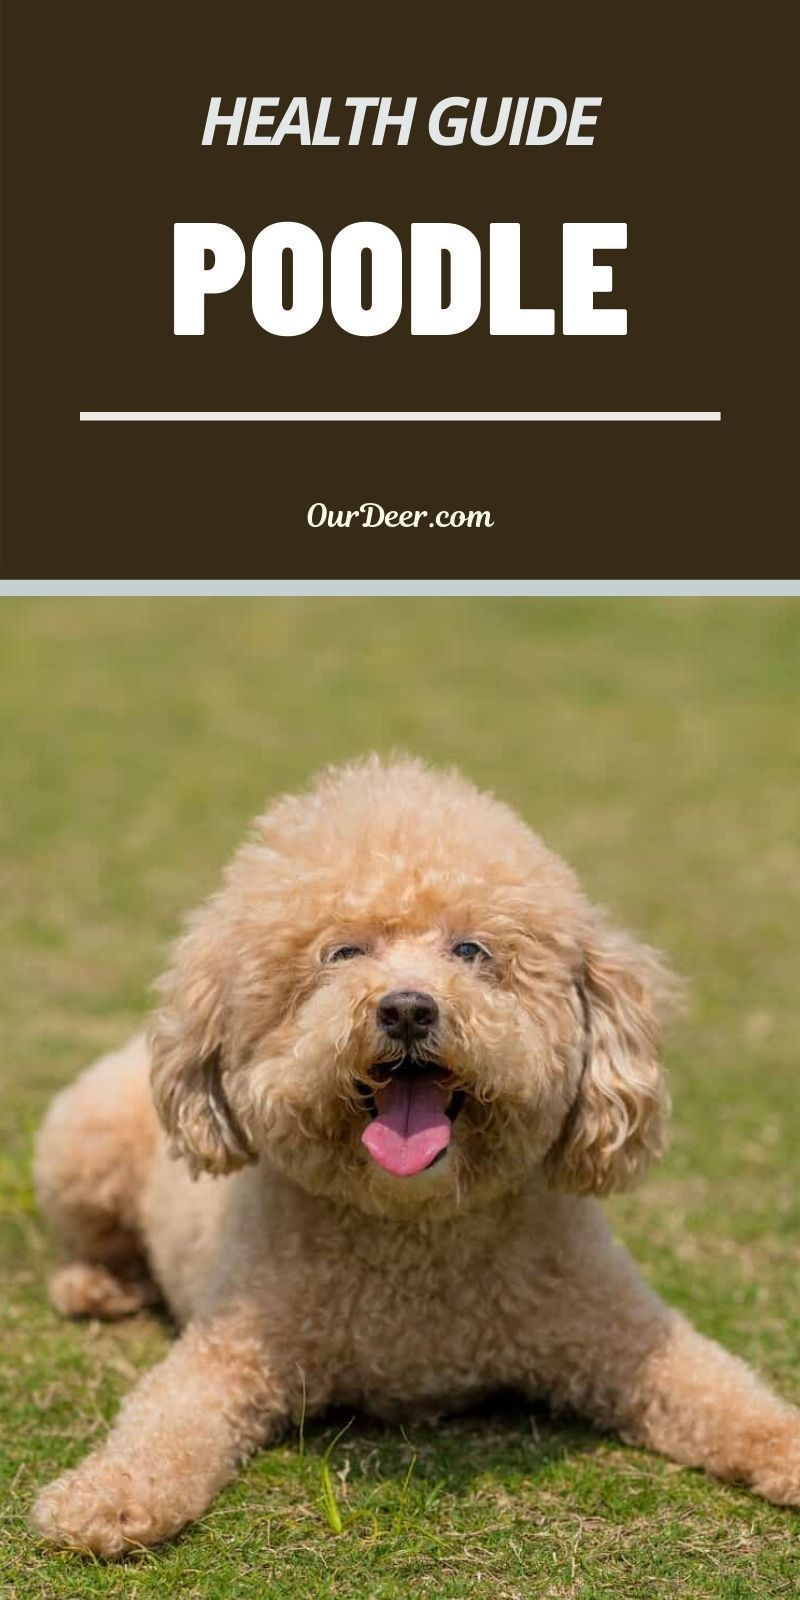 The Poodle is a breed that defies some of the rules about smaller dogs living longer and bigger dogs living shorter lives. #Poodle #PoodlePuppies #breedoverview #PoodlePuppy #PoodleTraining #PoodleHealth